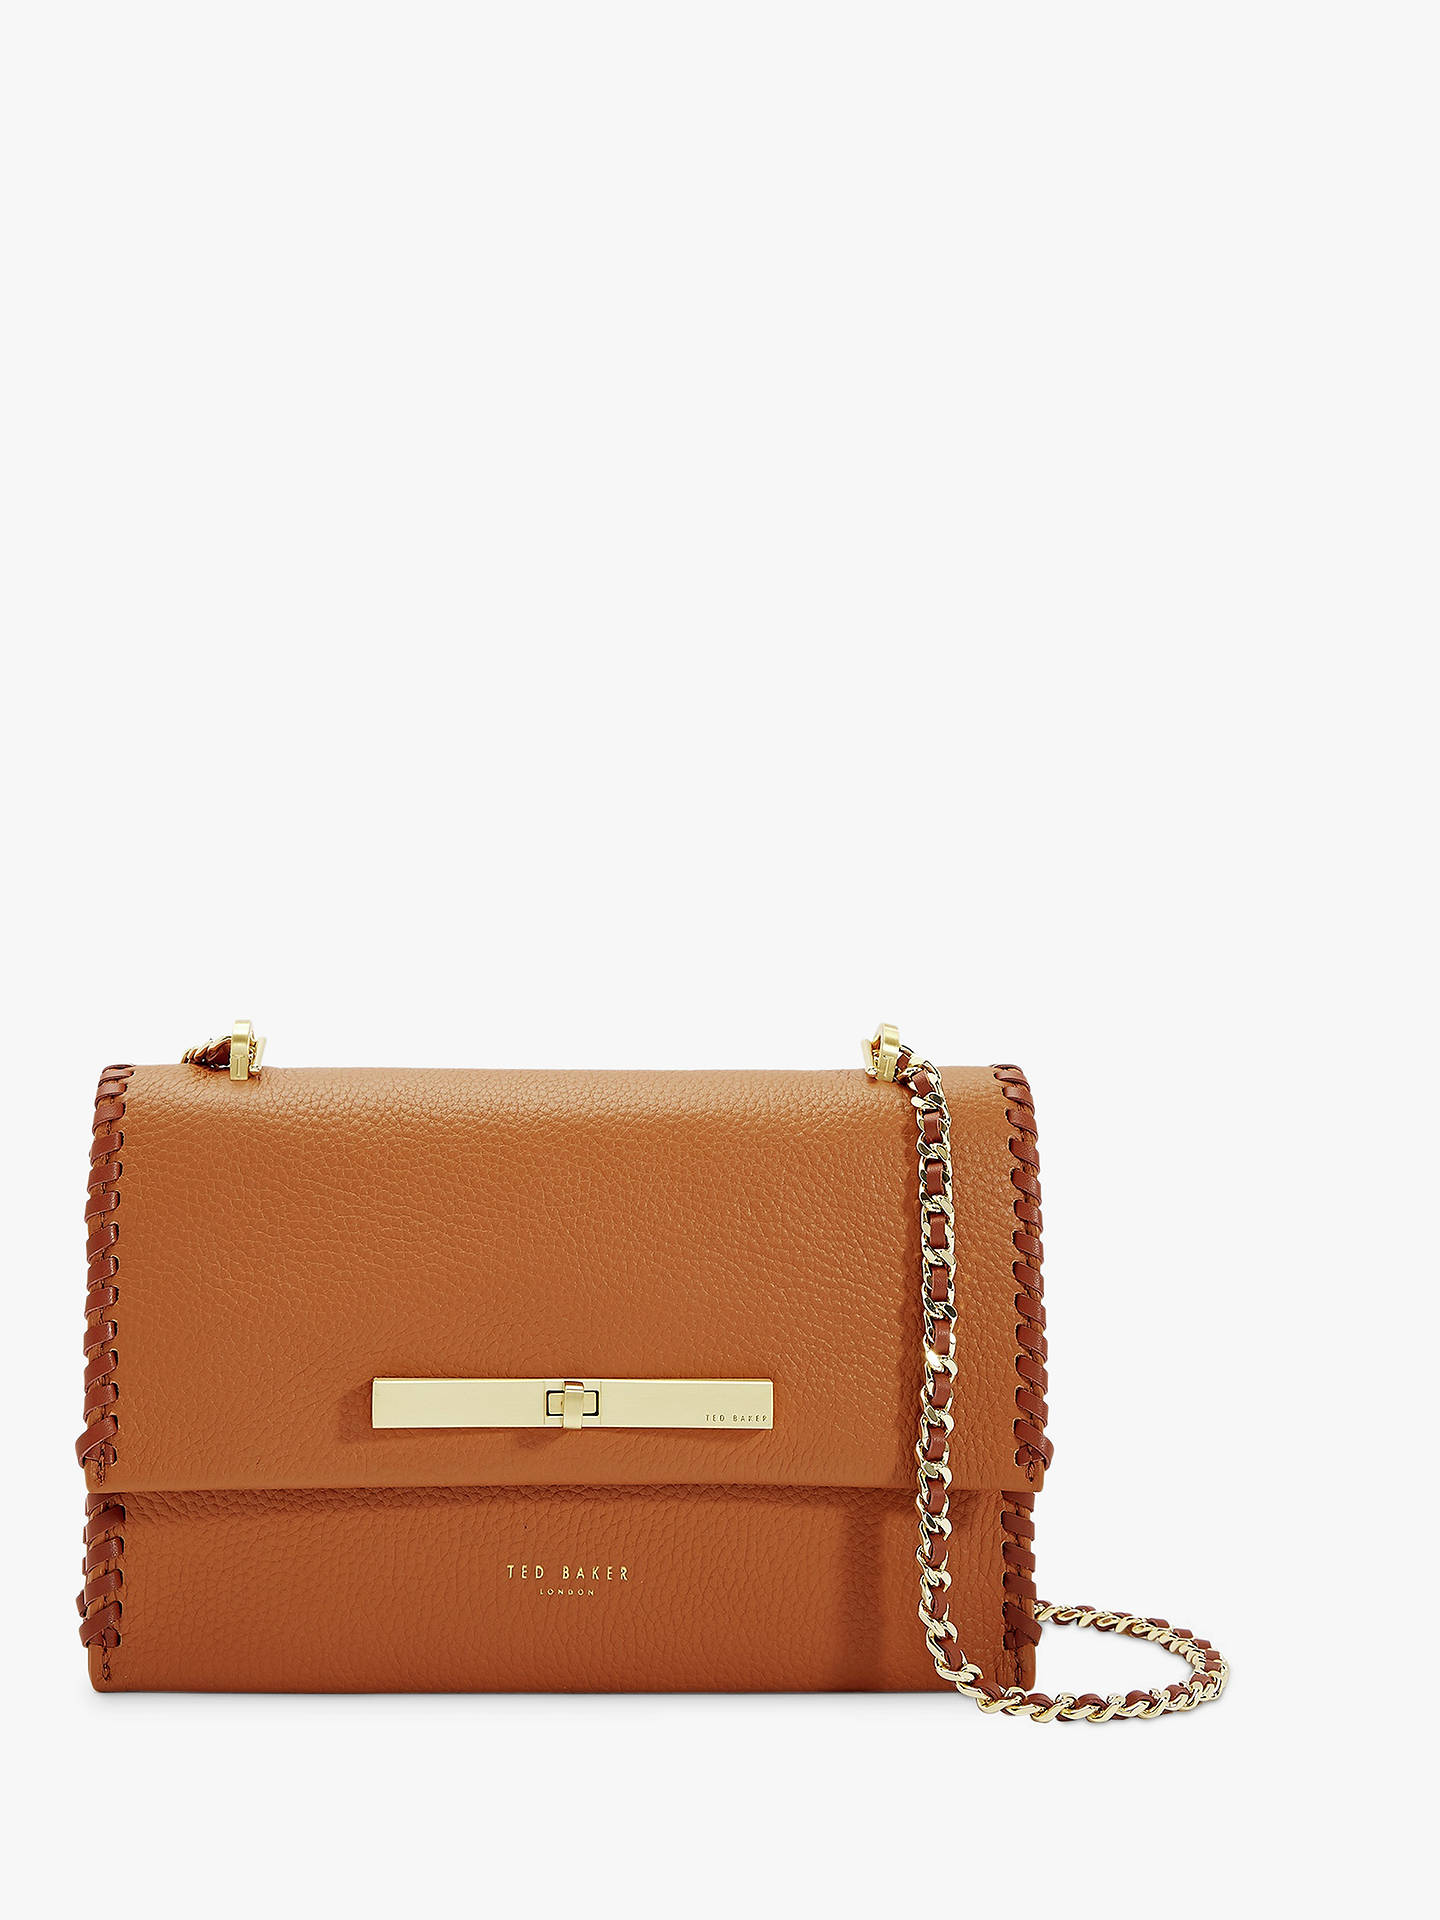 ddfa4162ea12 Ted Baker Cassiia Leather Cross Body Bag at John Lewis   Partners